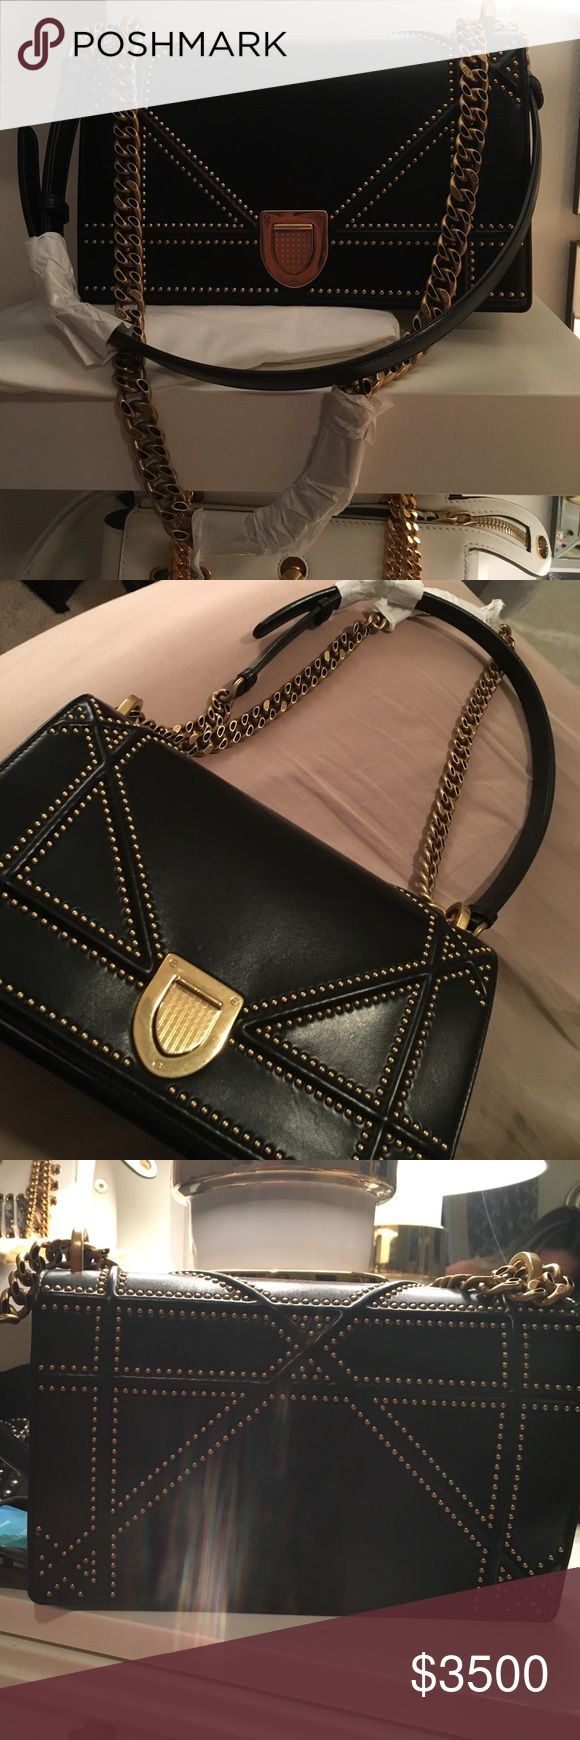 Studded Medium Diorama Calfskin Flap Bag Brand new beautiful studded diorama bag in medium size bought in Paris on avenue montaingne store.gorgeous color and style. Retail 3600+tax will give better price via paypel msg me for more questions and details Dior Bags Shoulder Bags